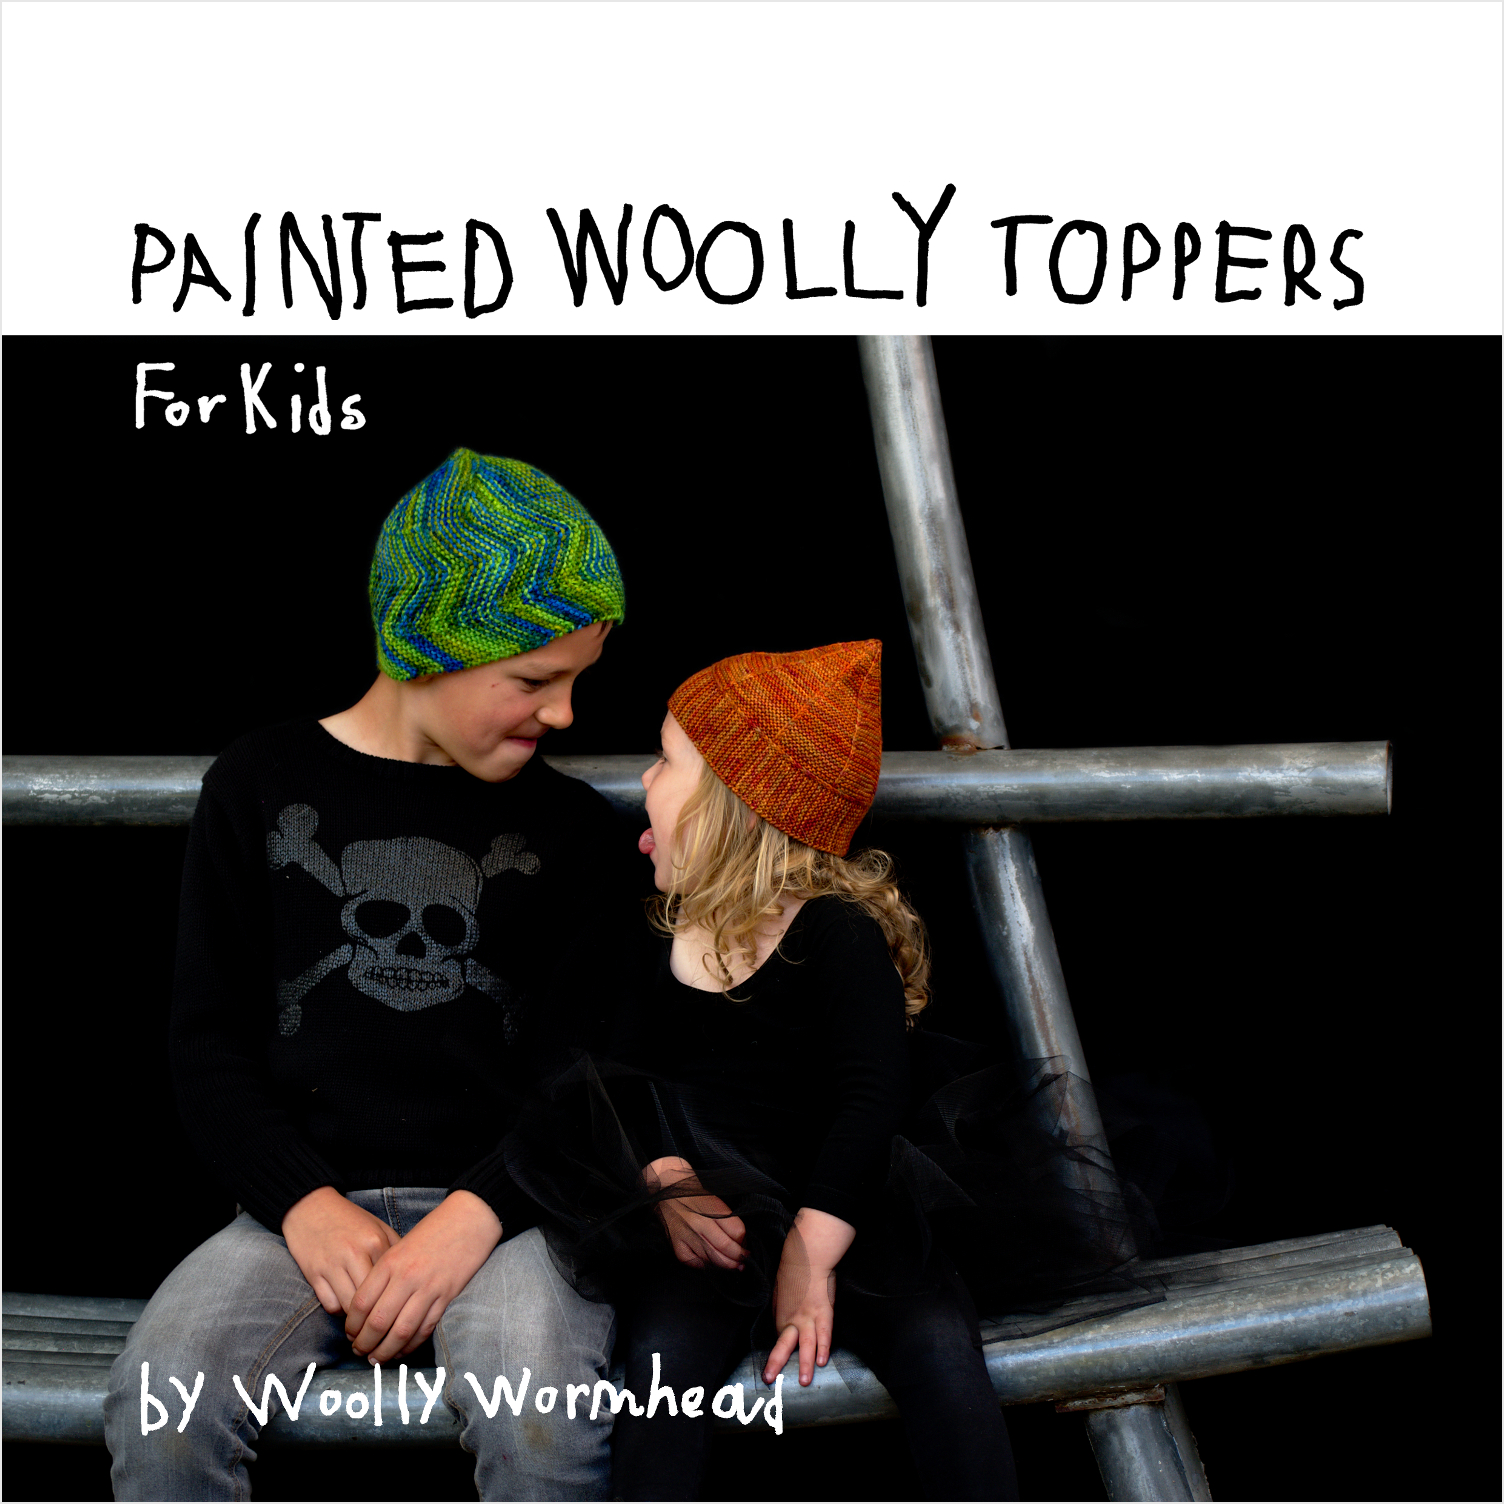 Painted Woolly Toppers for Kids - my new book, due for release very shortly